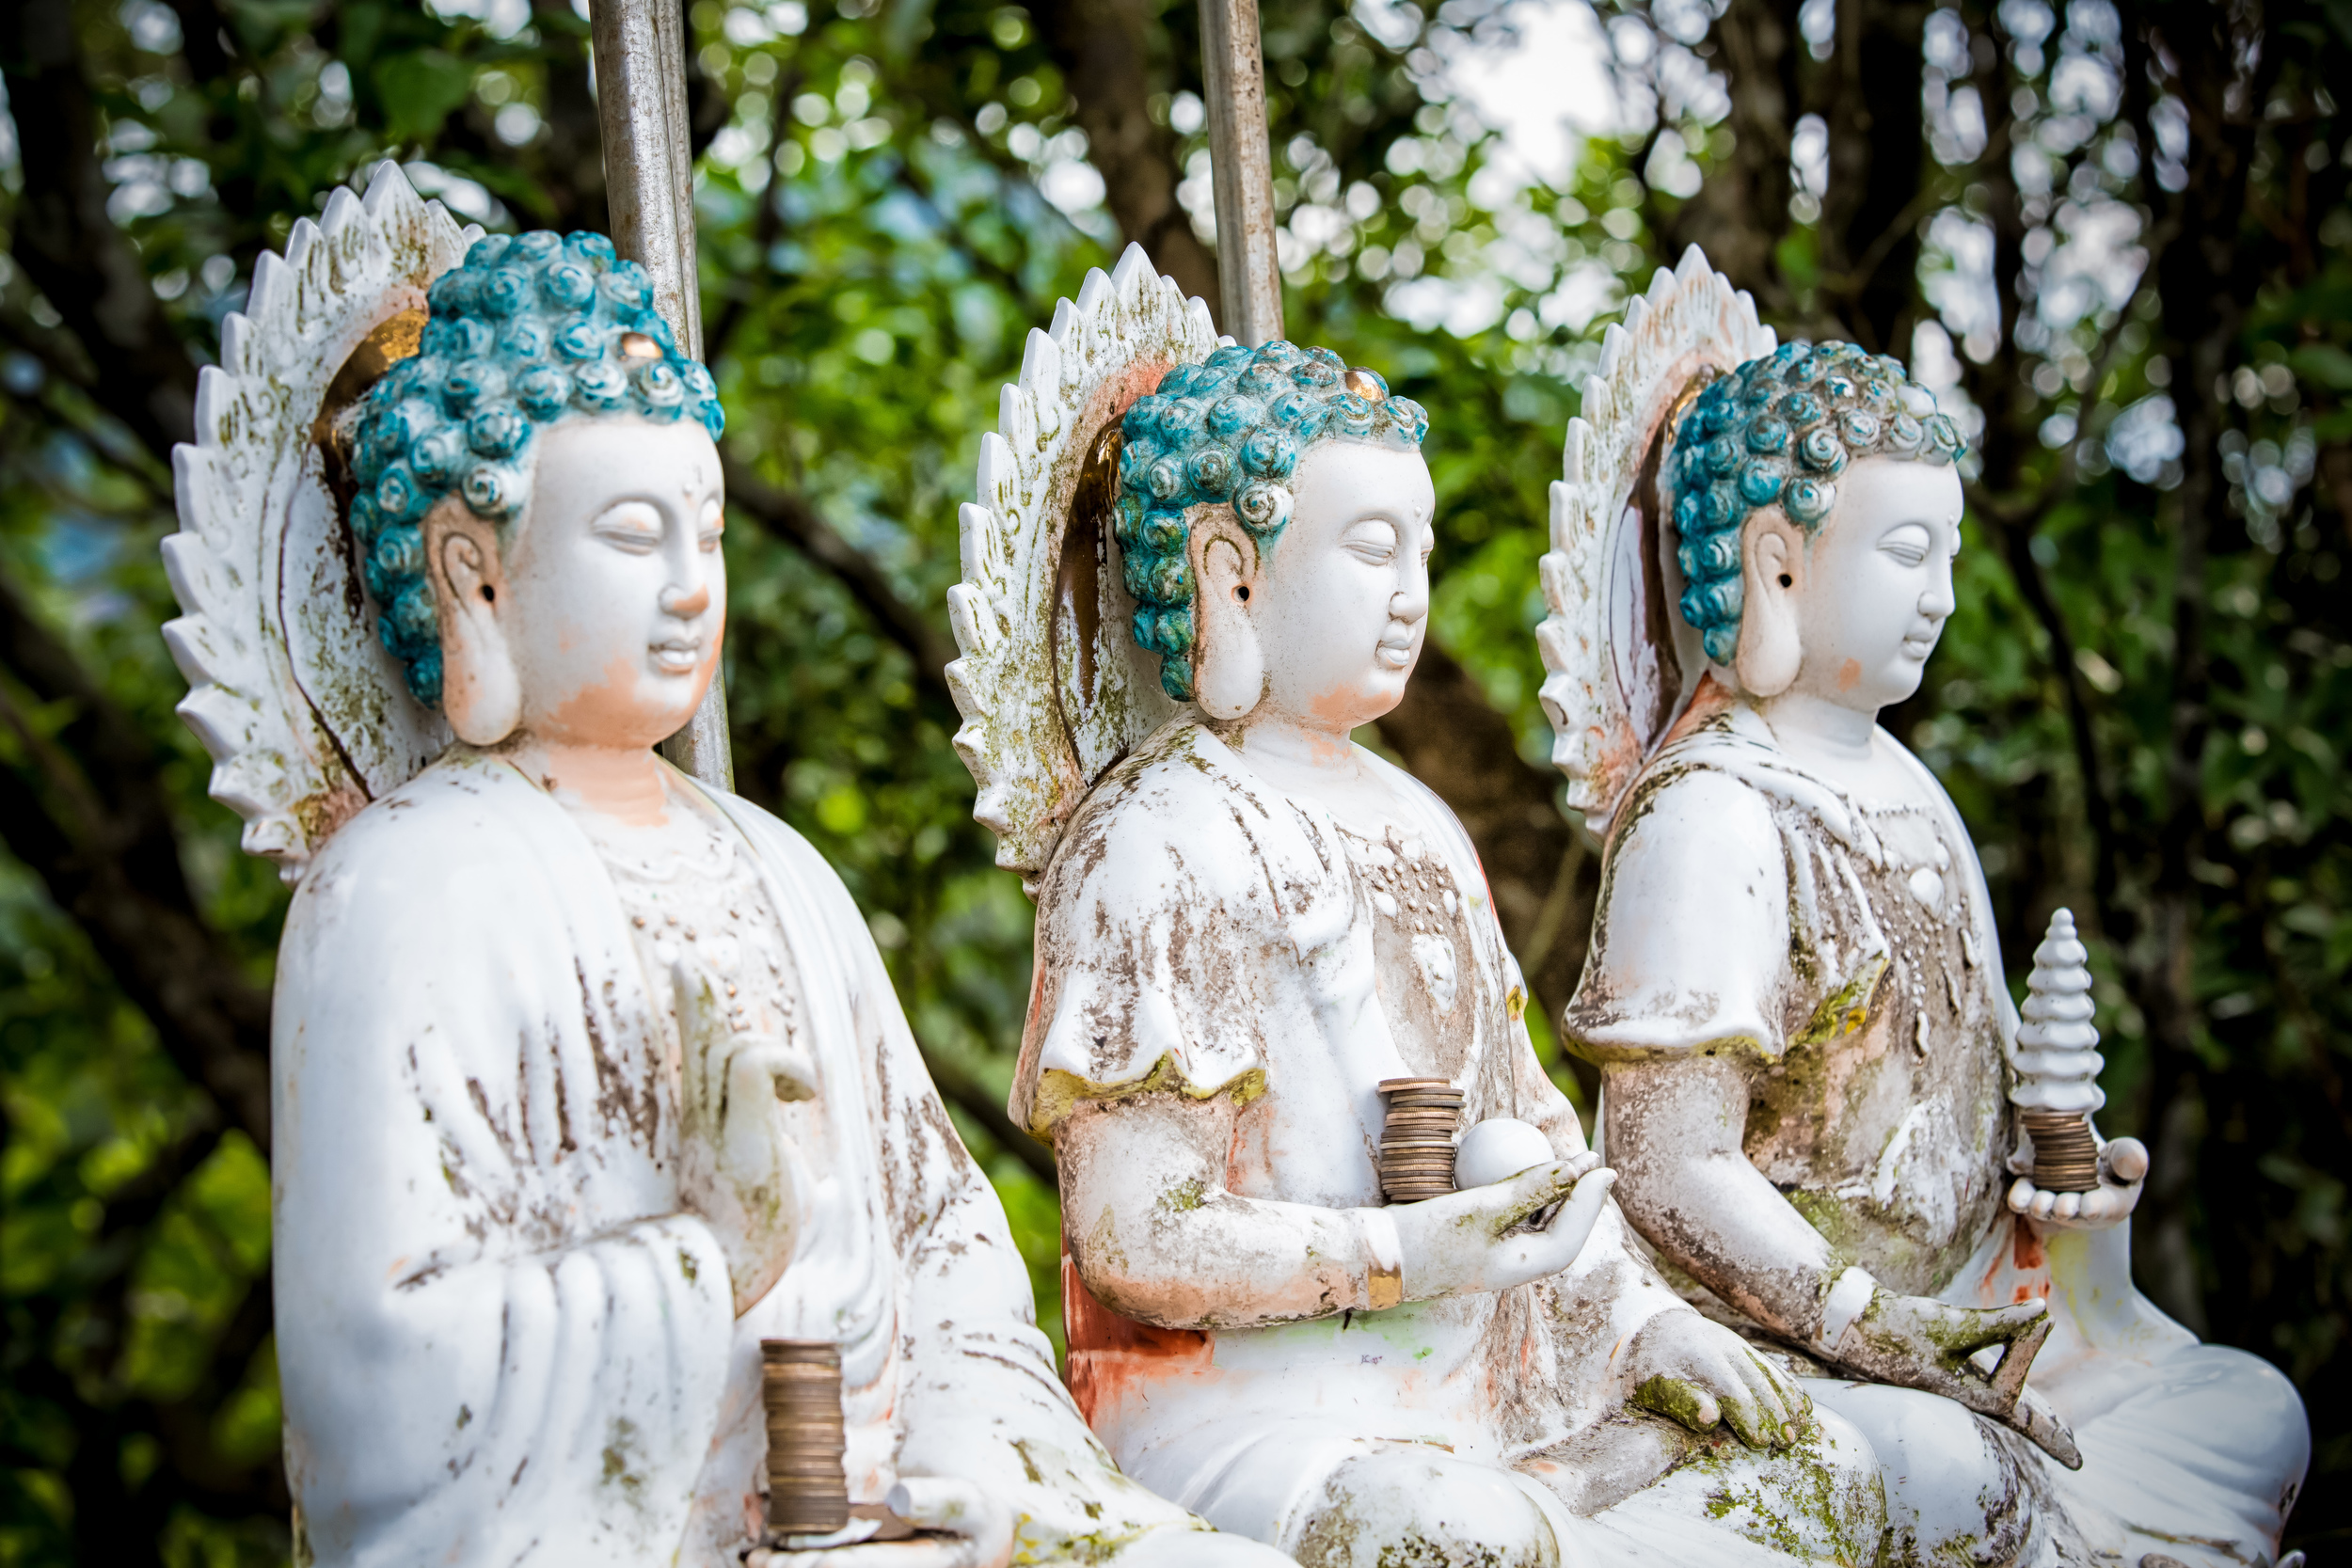 - Buddha Statues at the top of Putuo Mountain (普陀山)